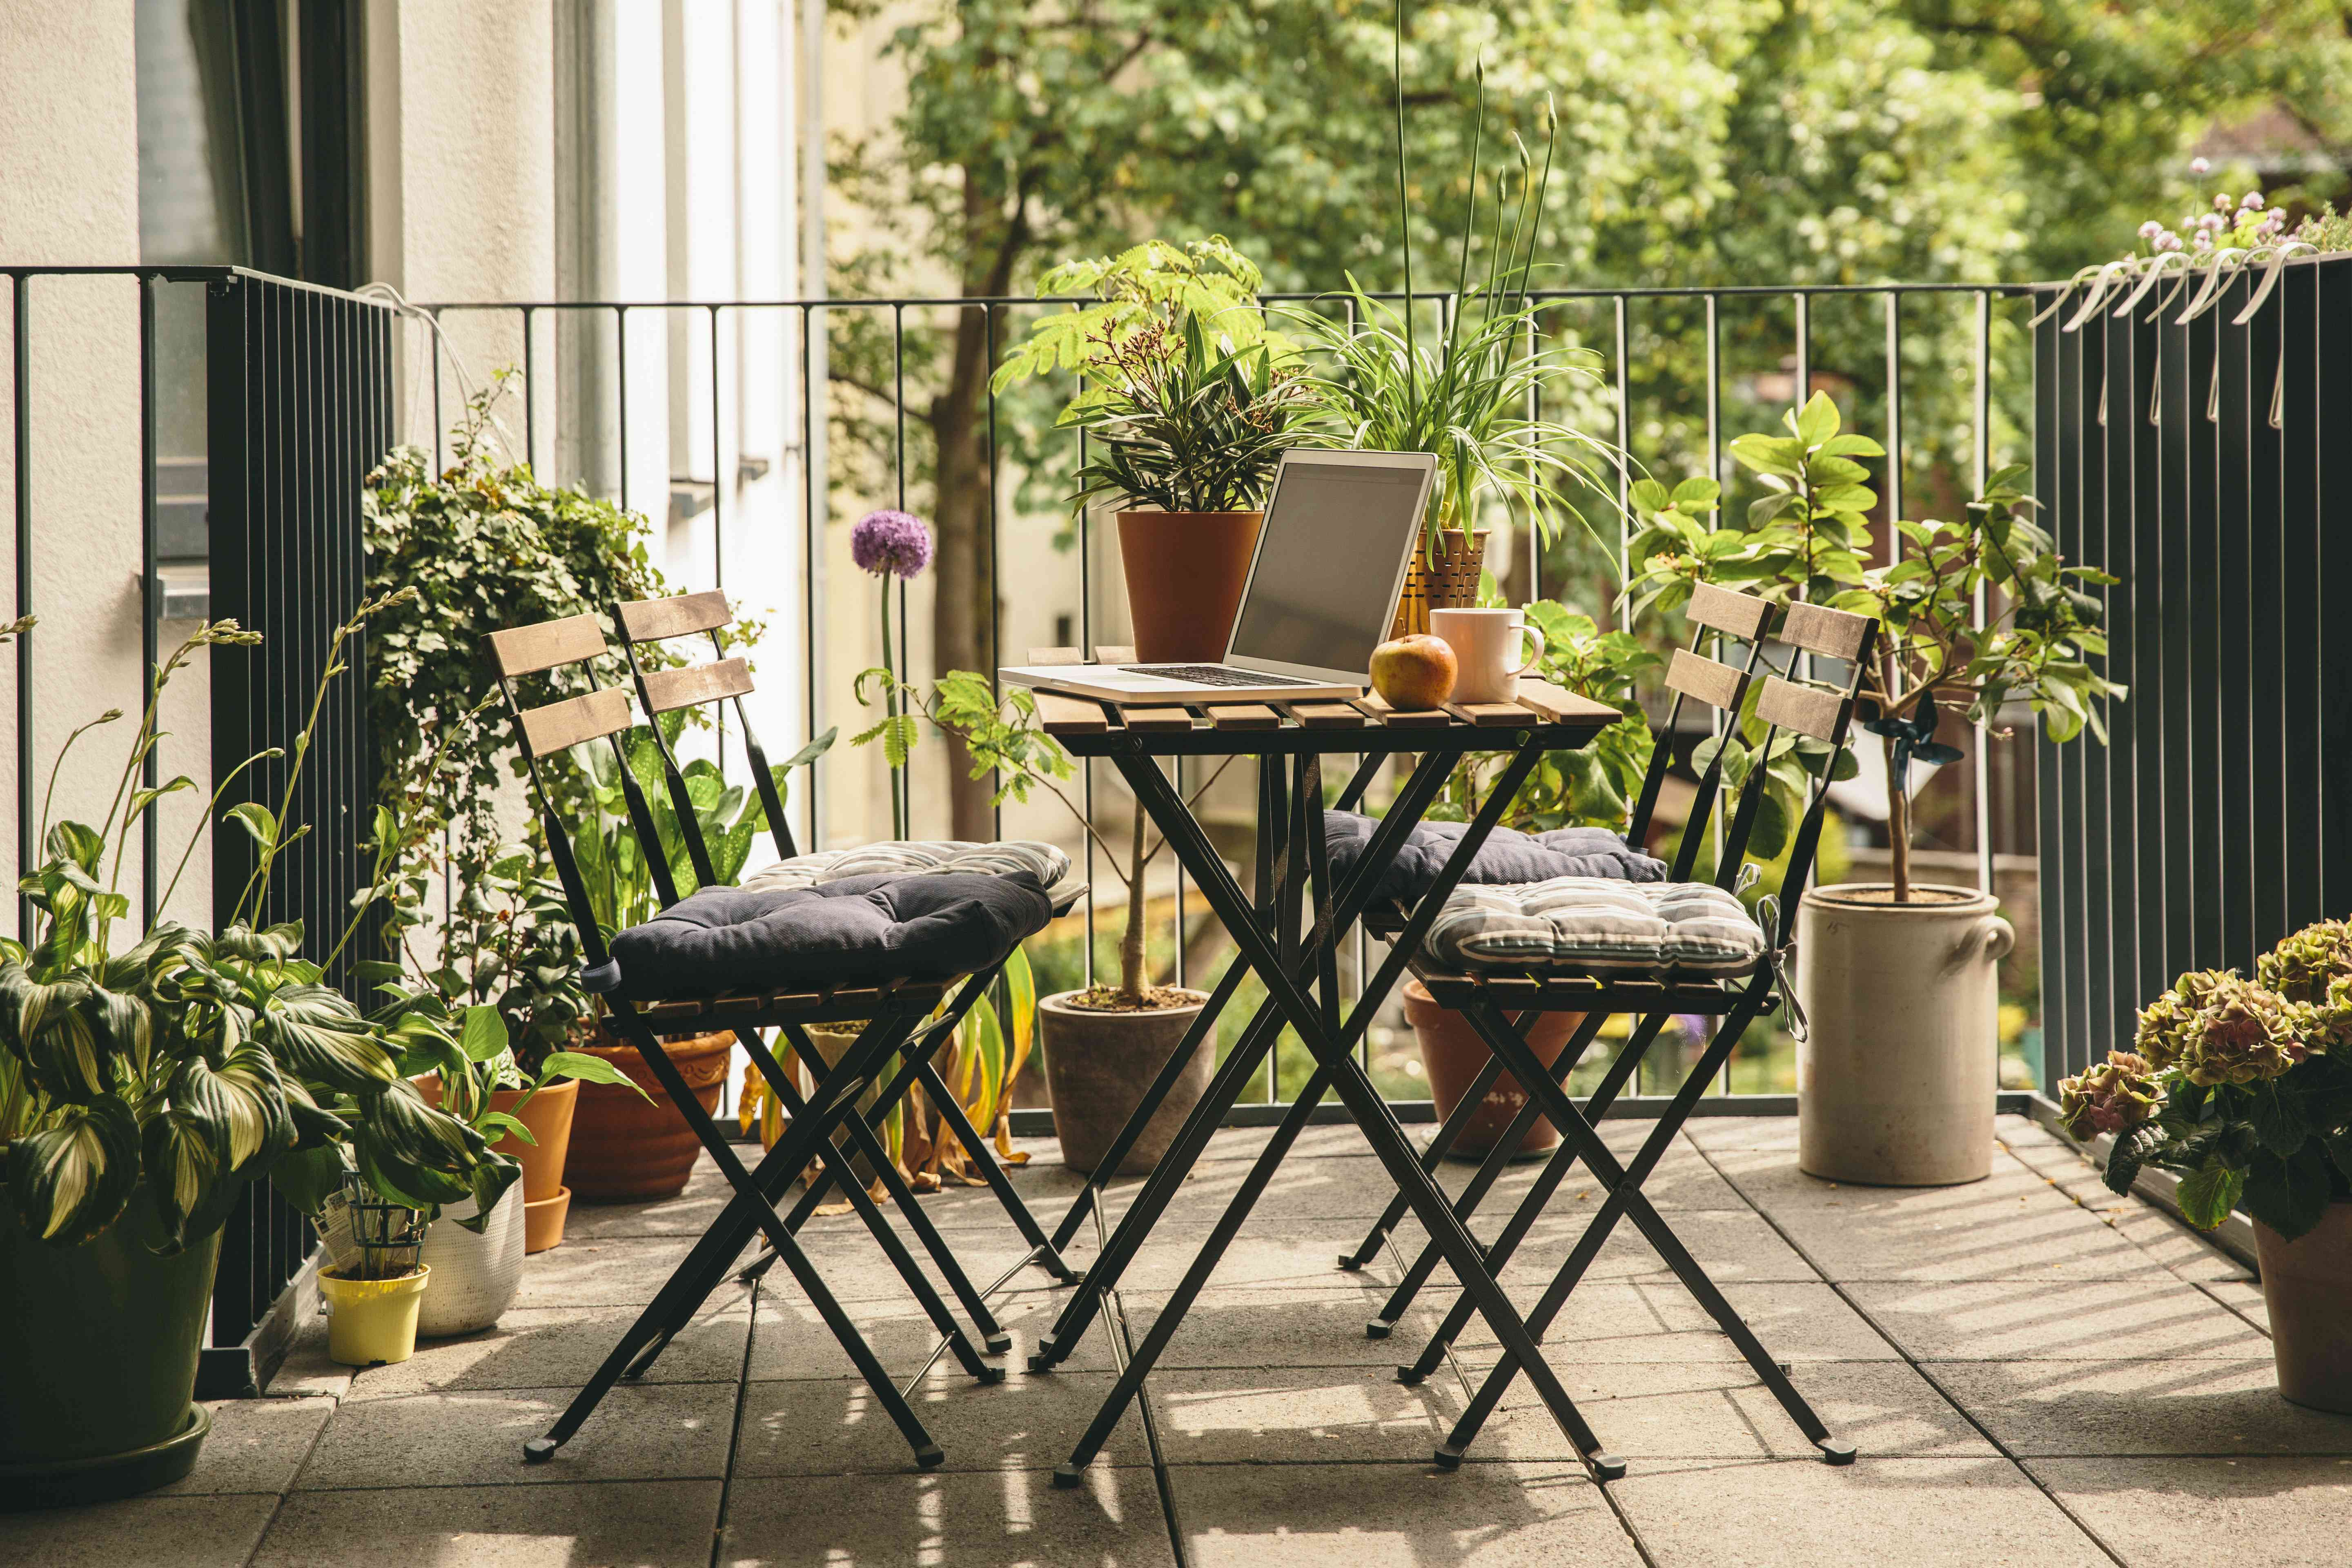 Bistro table outdoors surrounded by plants.